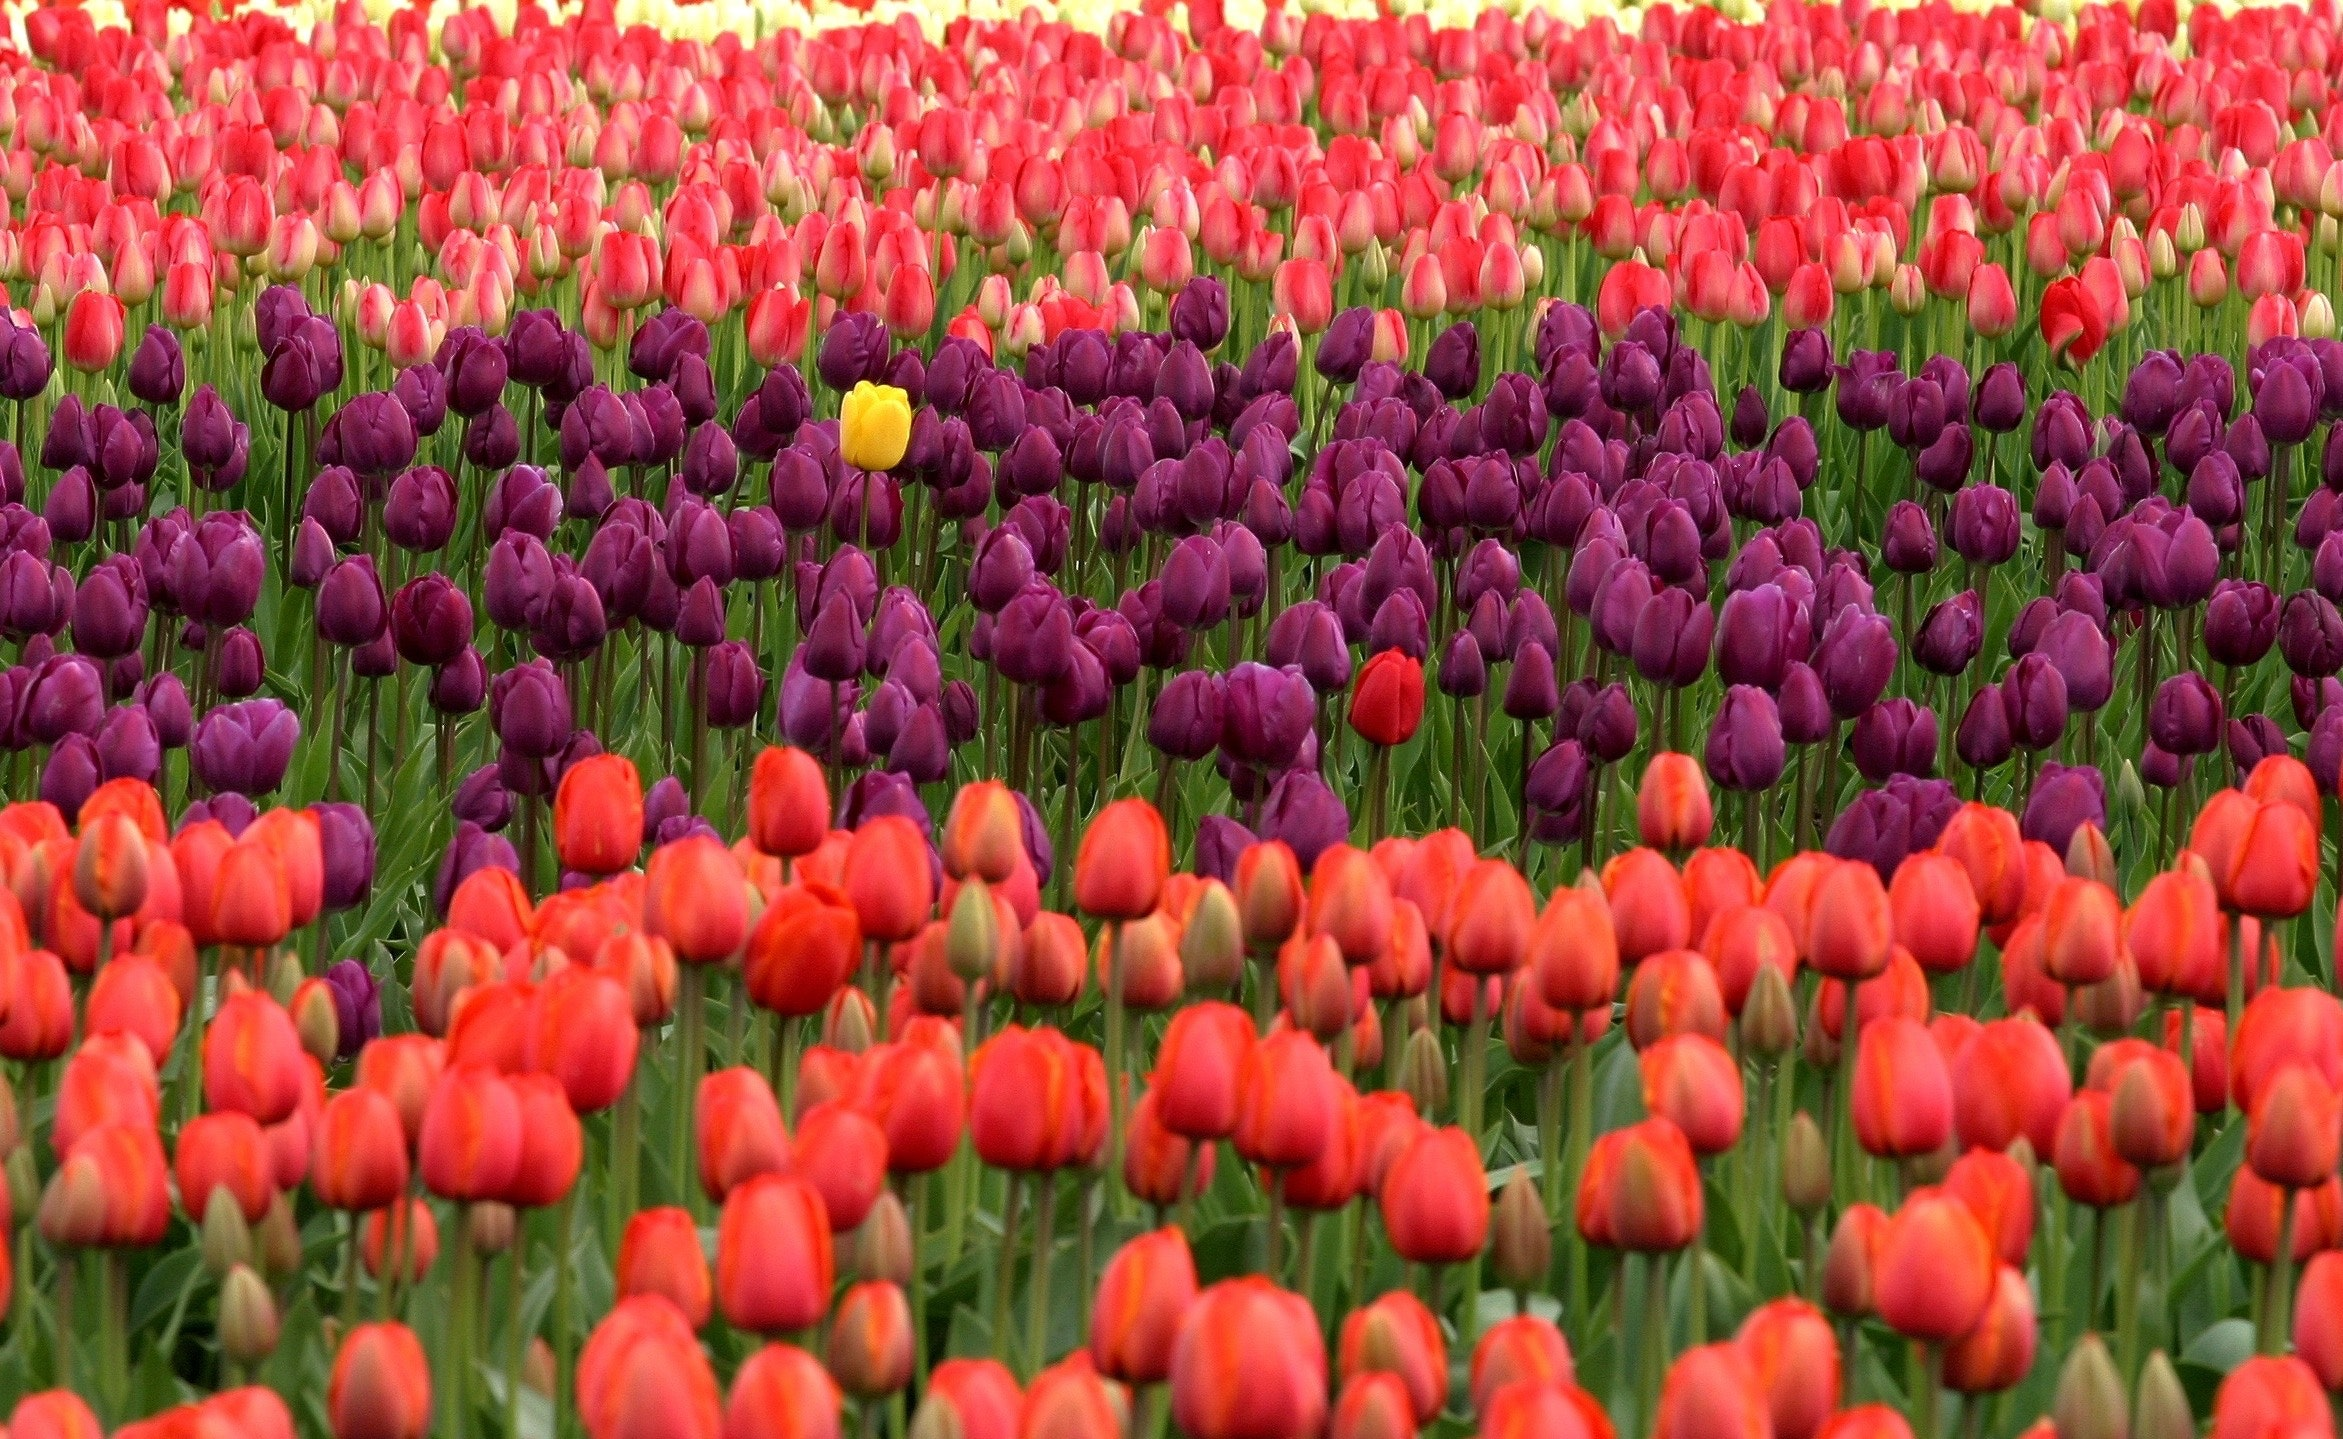 Red and Purple Flower Field, HD wallpaper, Tulips, Flowers, Flora, HQ Photo